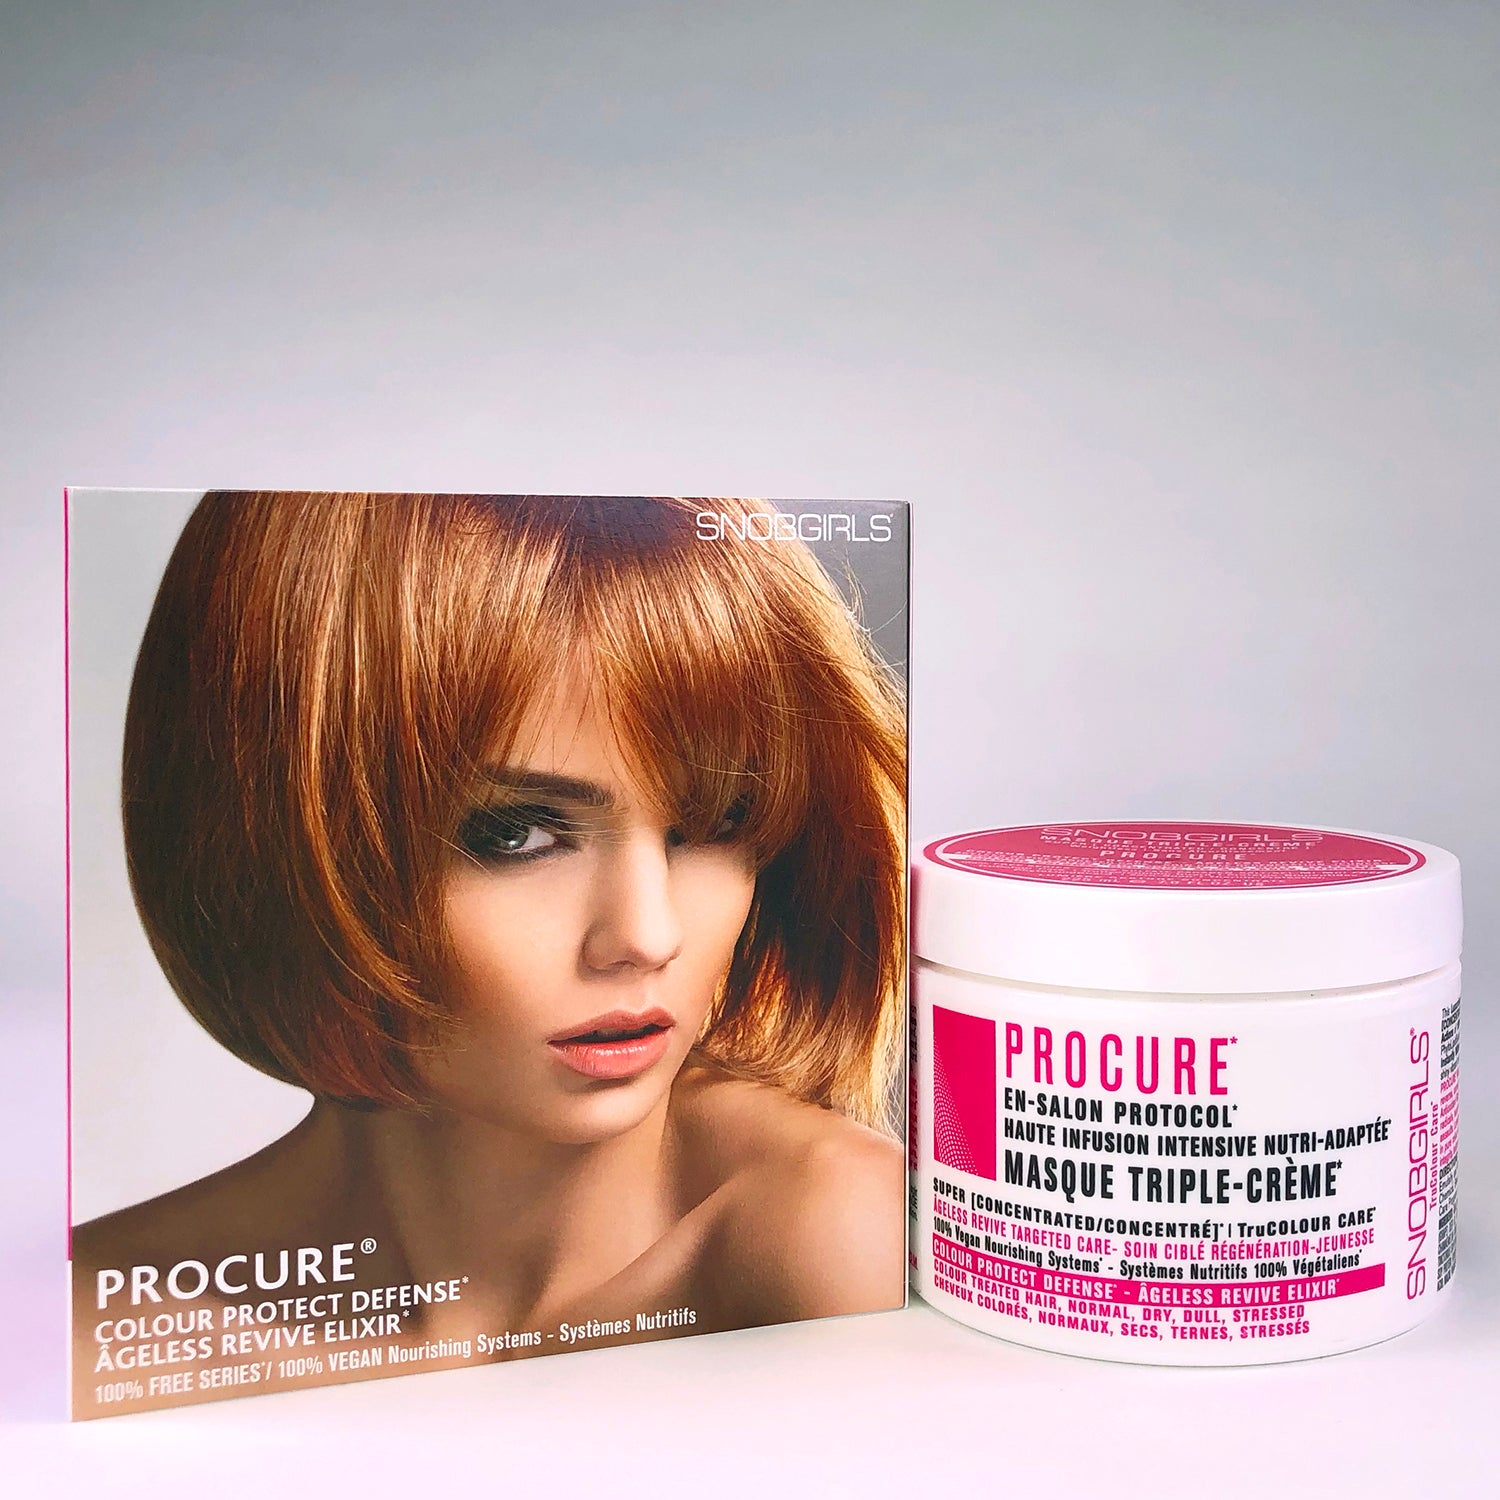 PROCURE Colour Protect Defense Triple-Creme Masque - SNOBGIRLS Canada